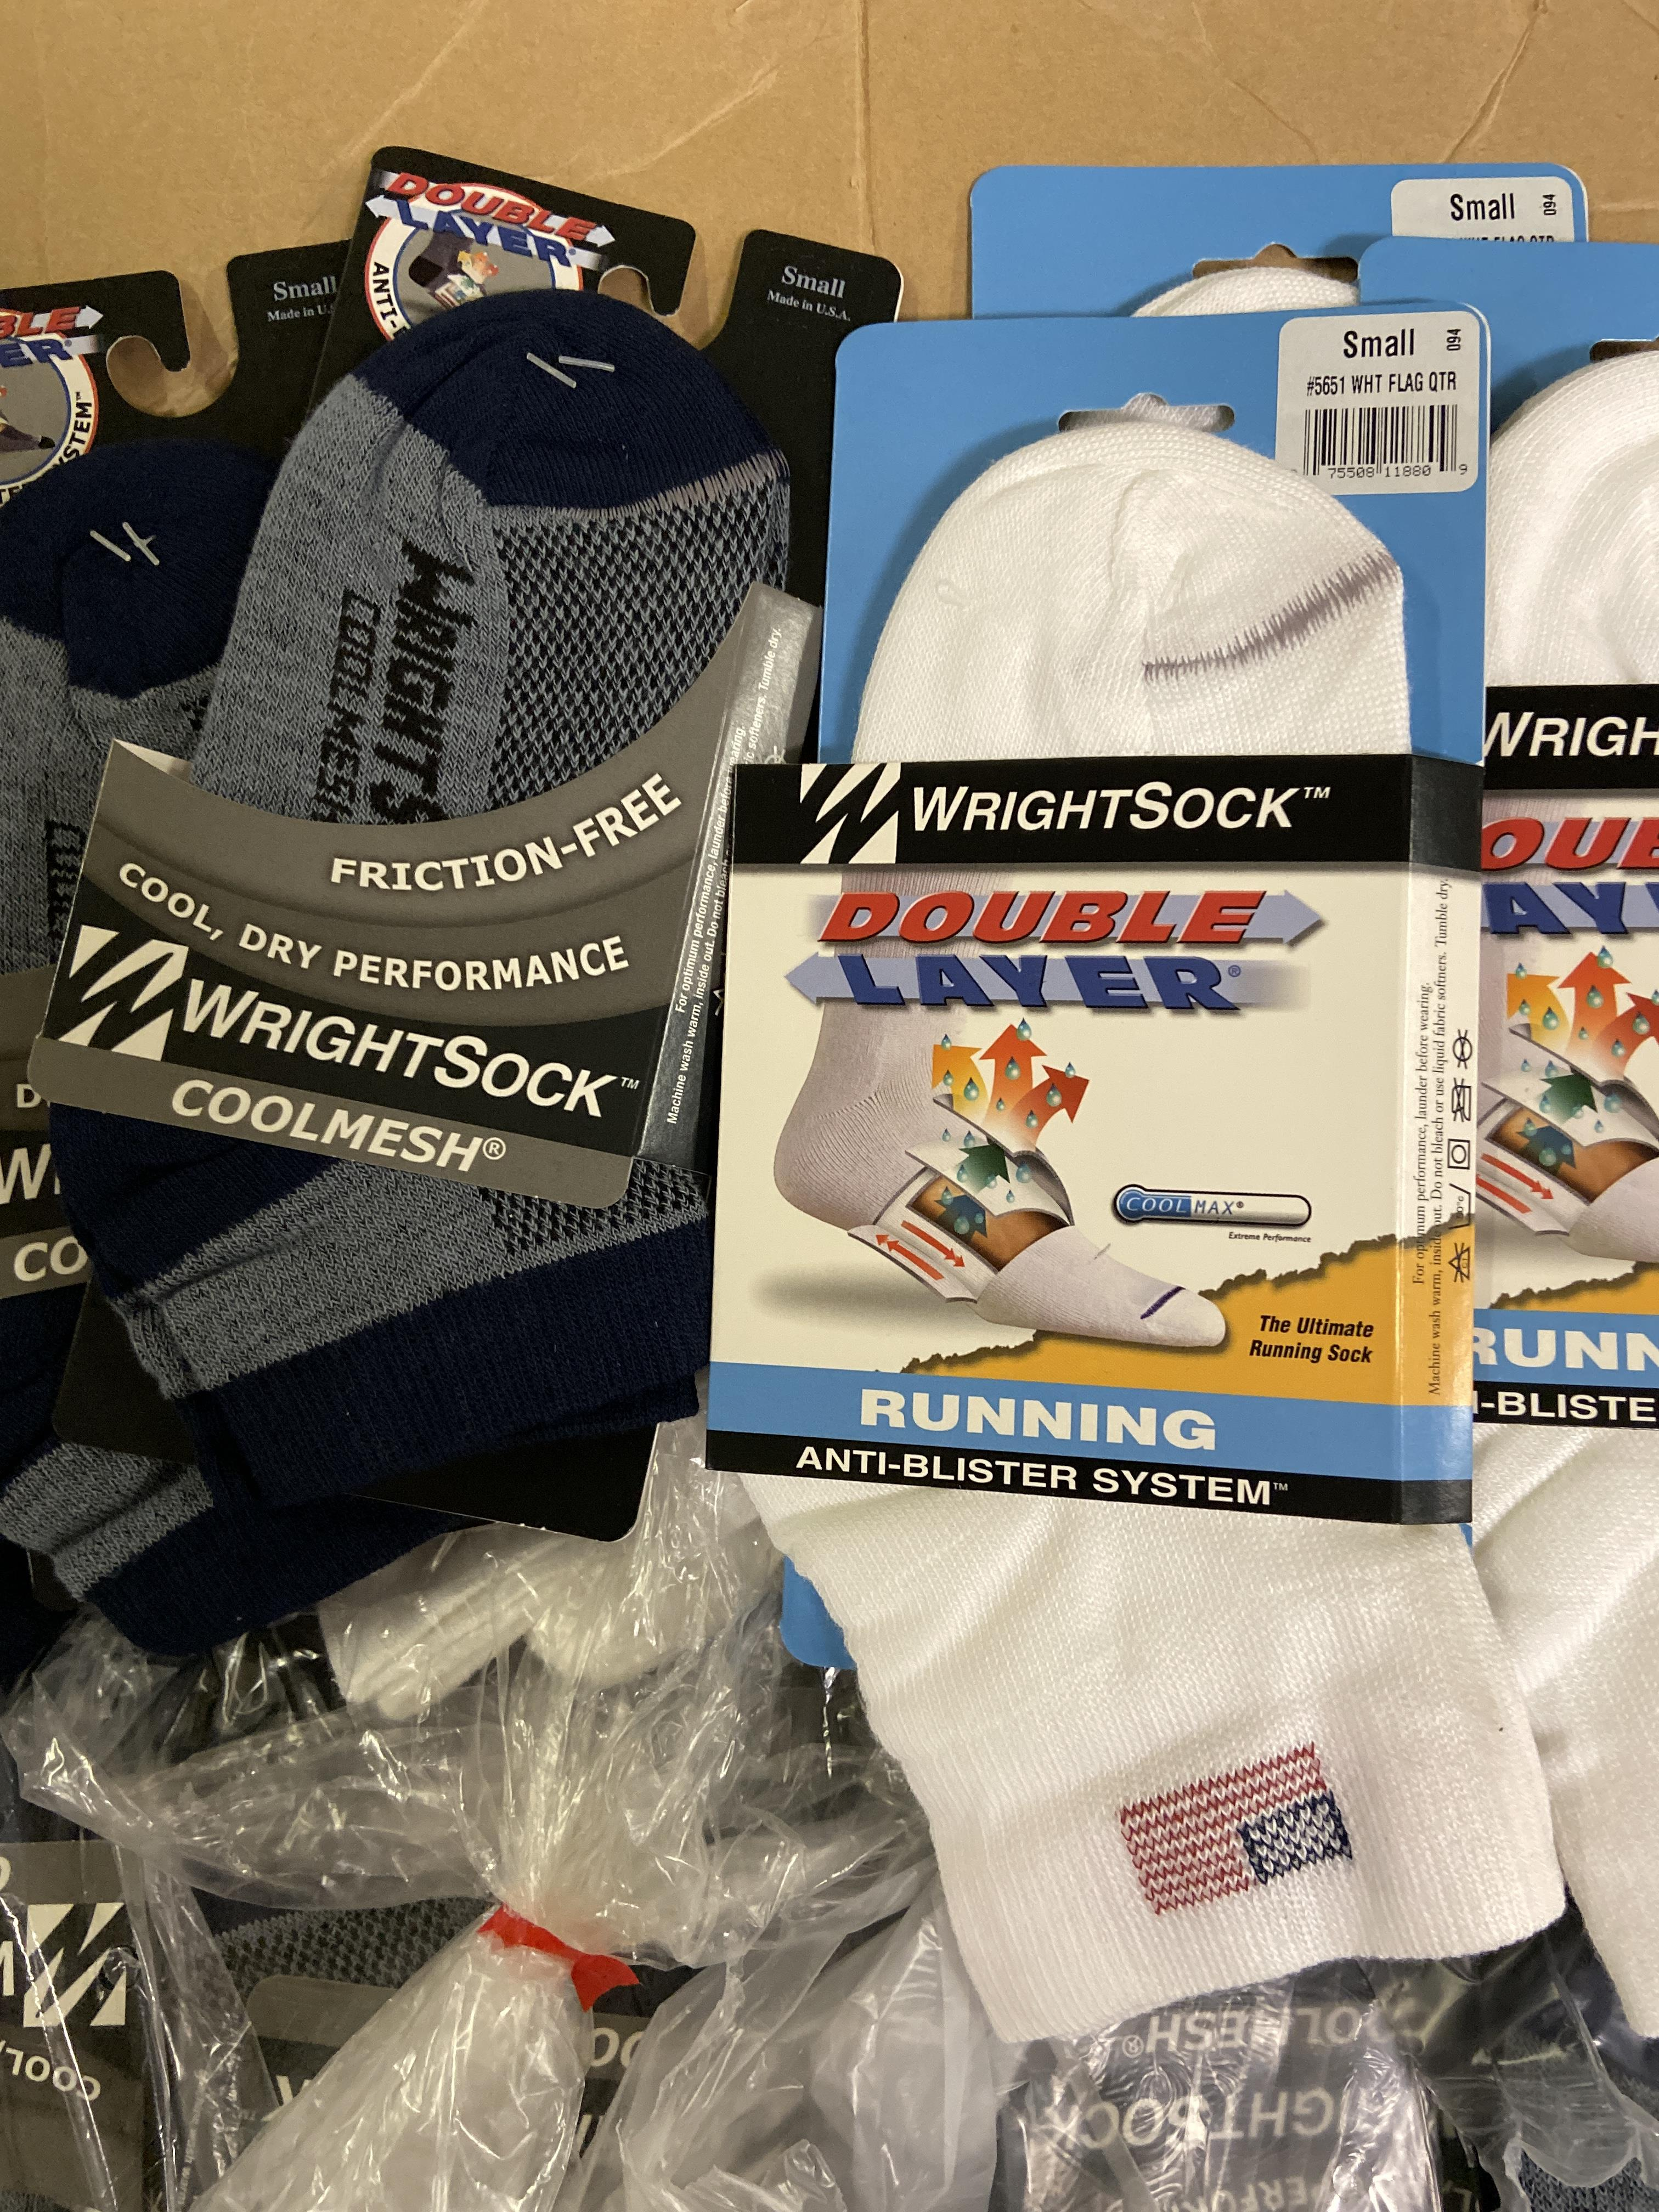 250+ packs of New Socks, Wrightsock Running and Coolmesh, Double Layer, Various Colors - Image 2 of 3